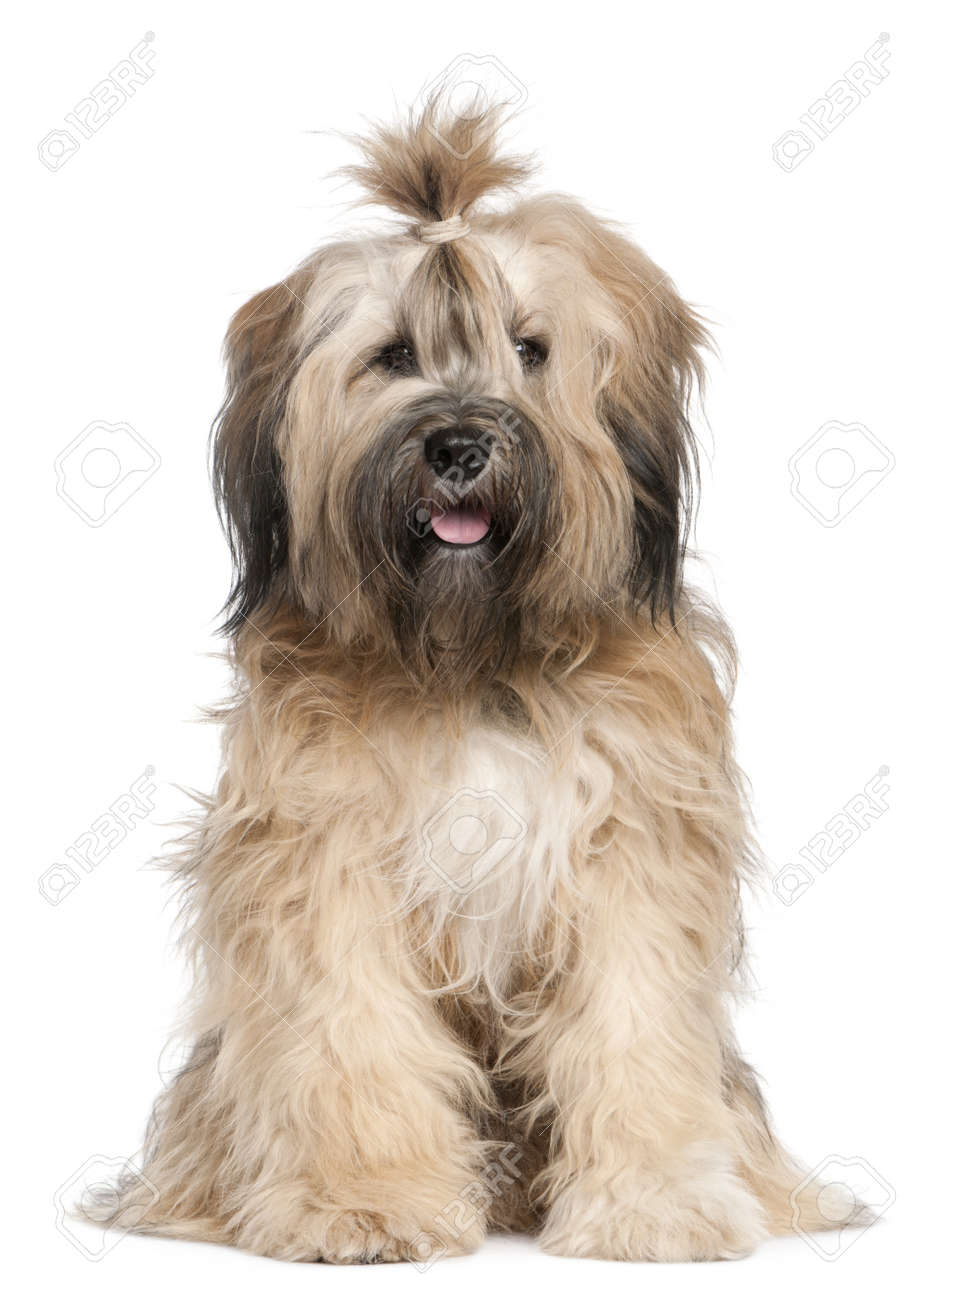 Tibetan Terrier, 1 year old, sitting in front of white background Stock Photo - 8651456